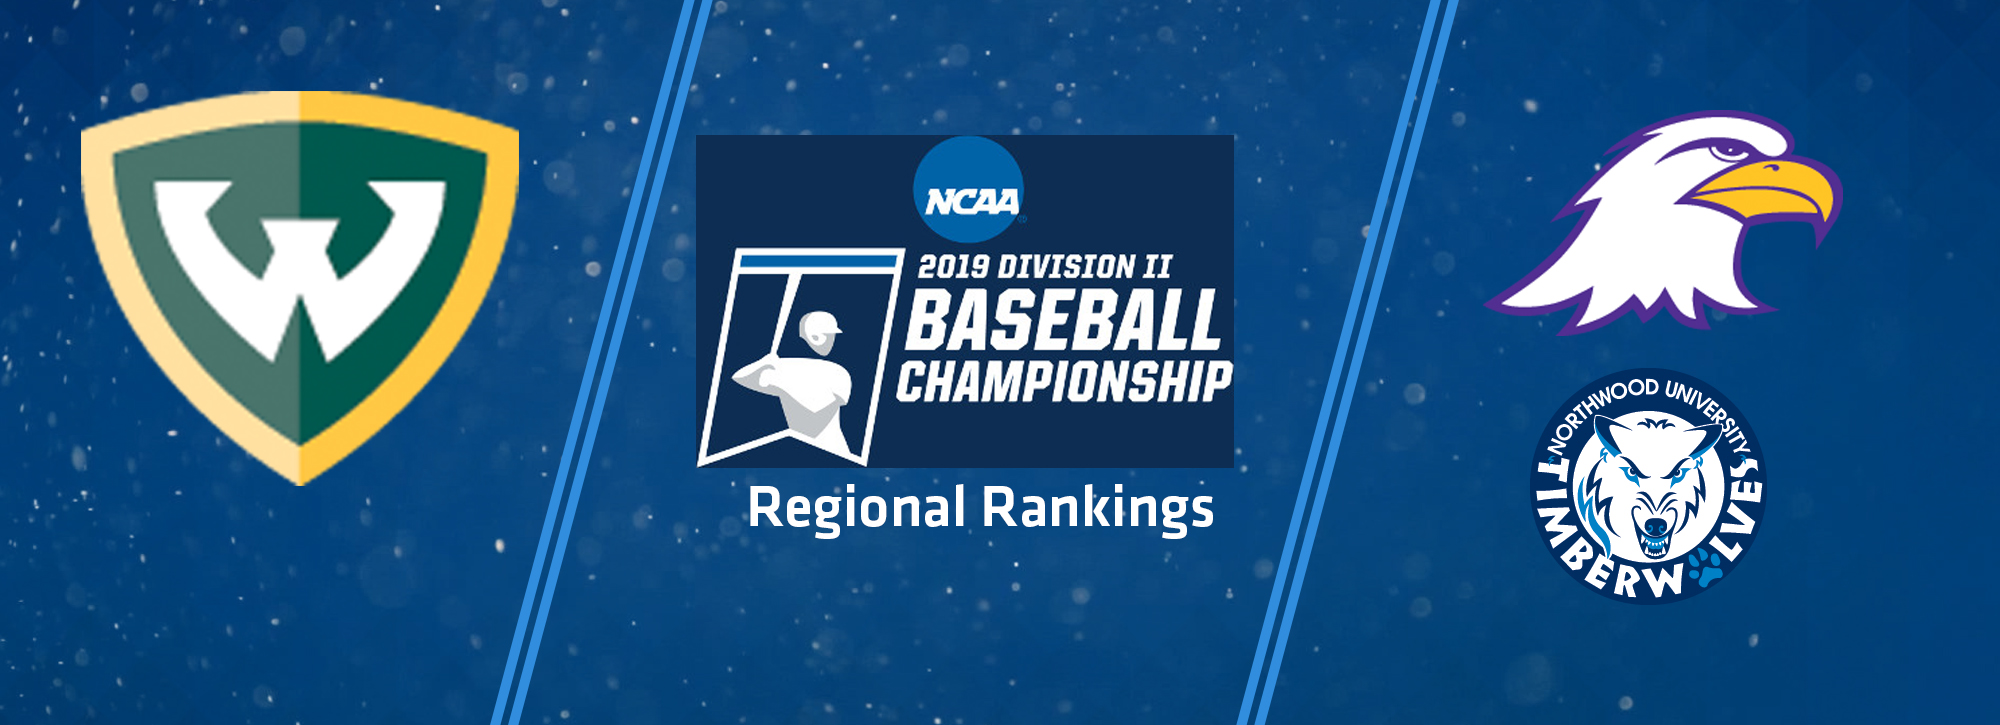 Warriors head Midwest Region baseball rankings; Eagles are second and T'Wolves fifth